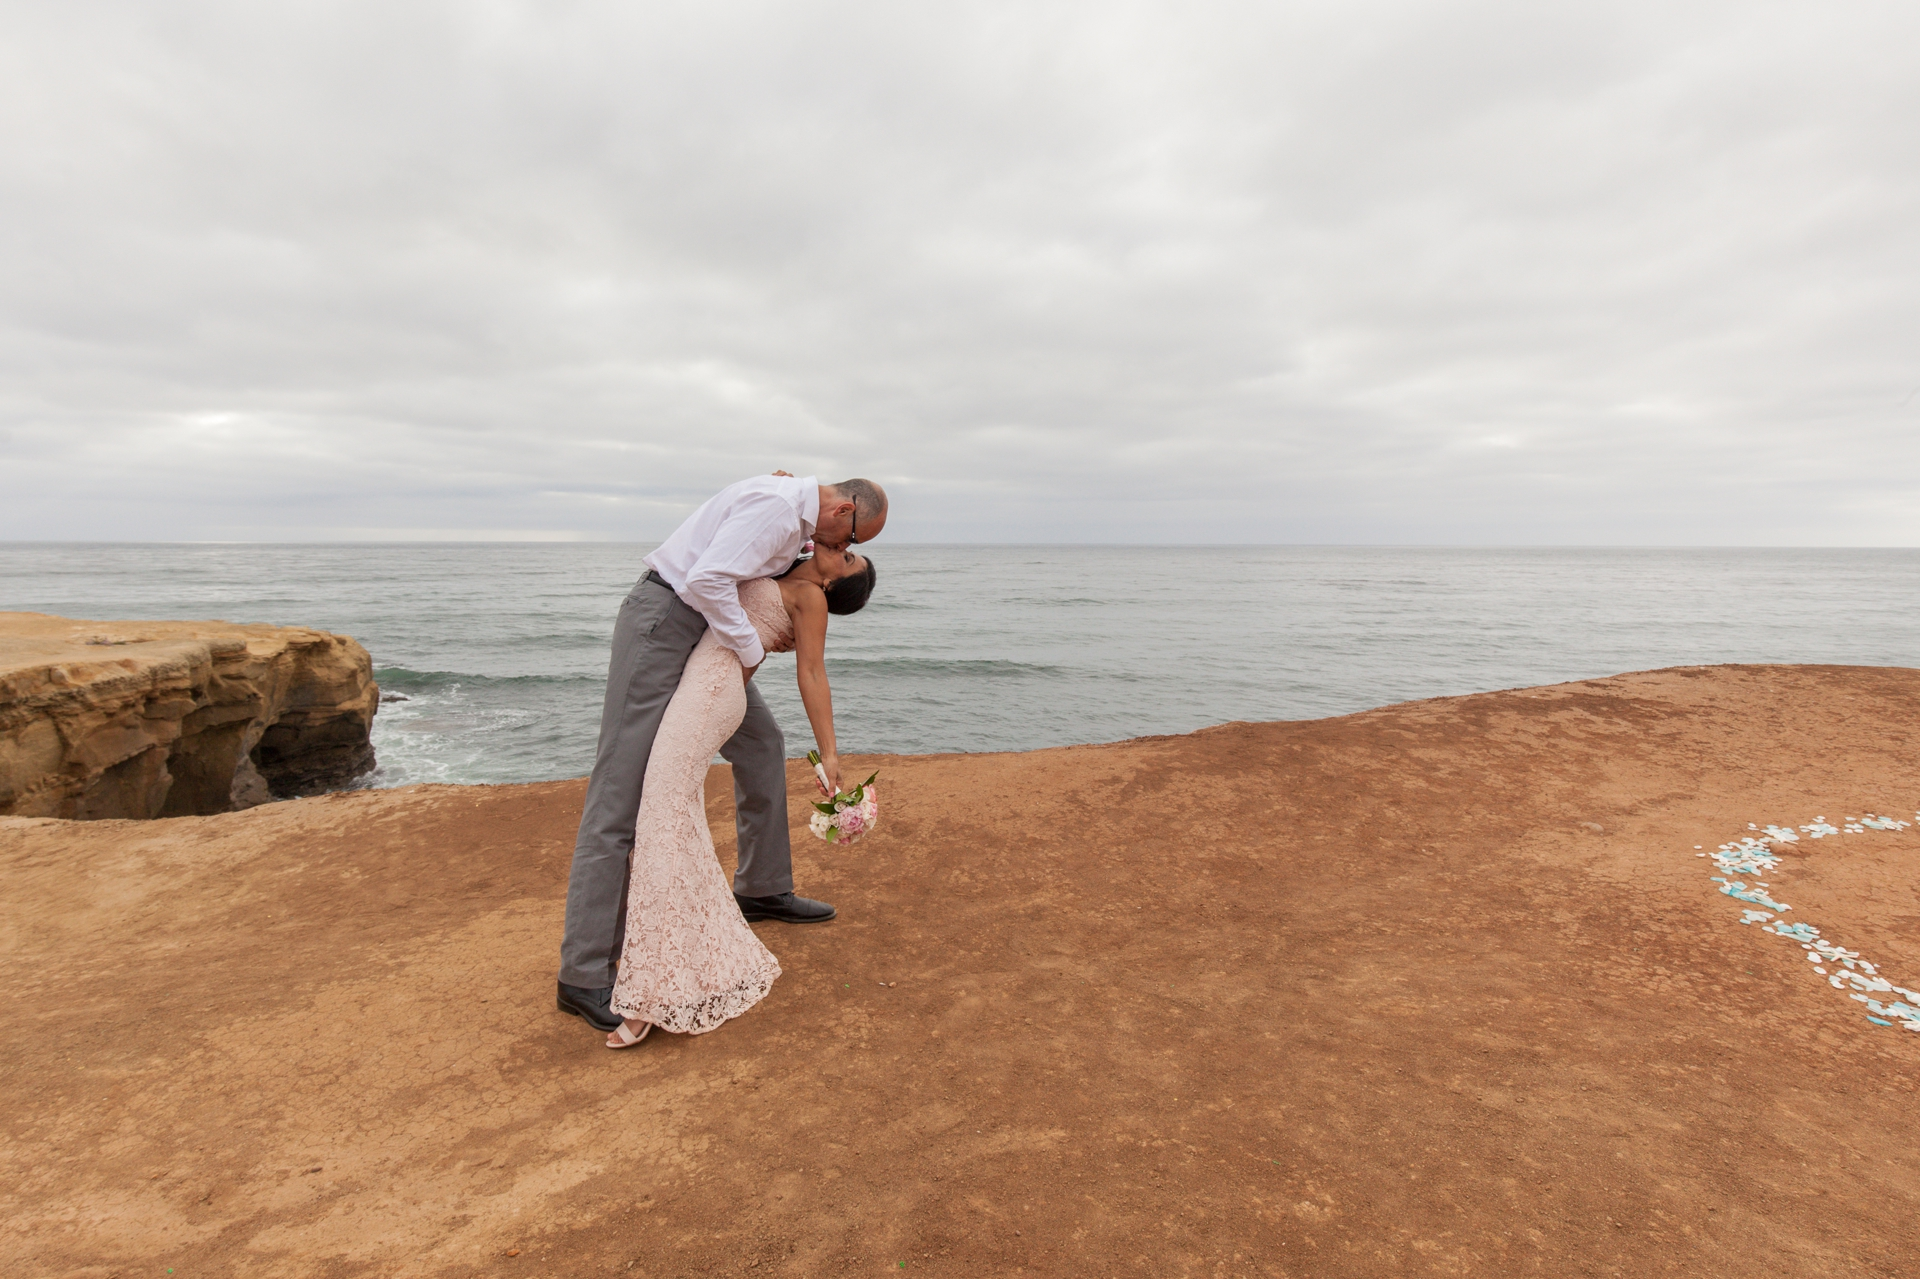 San Diego Elopement in June on Sunset Cliffs